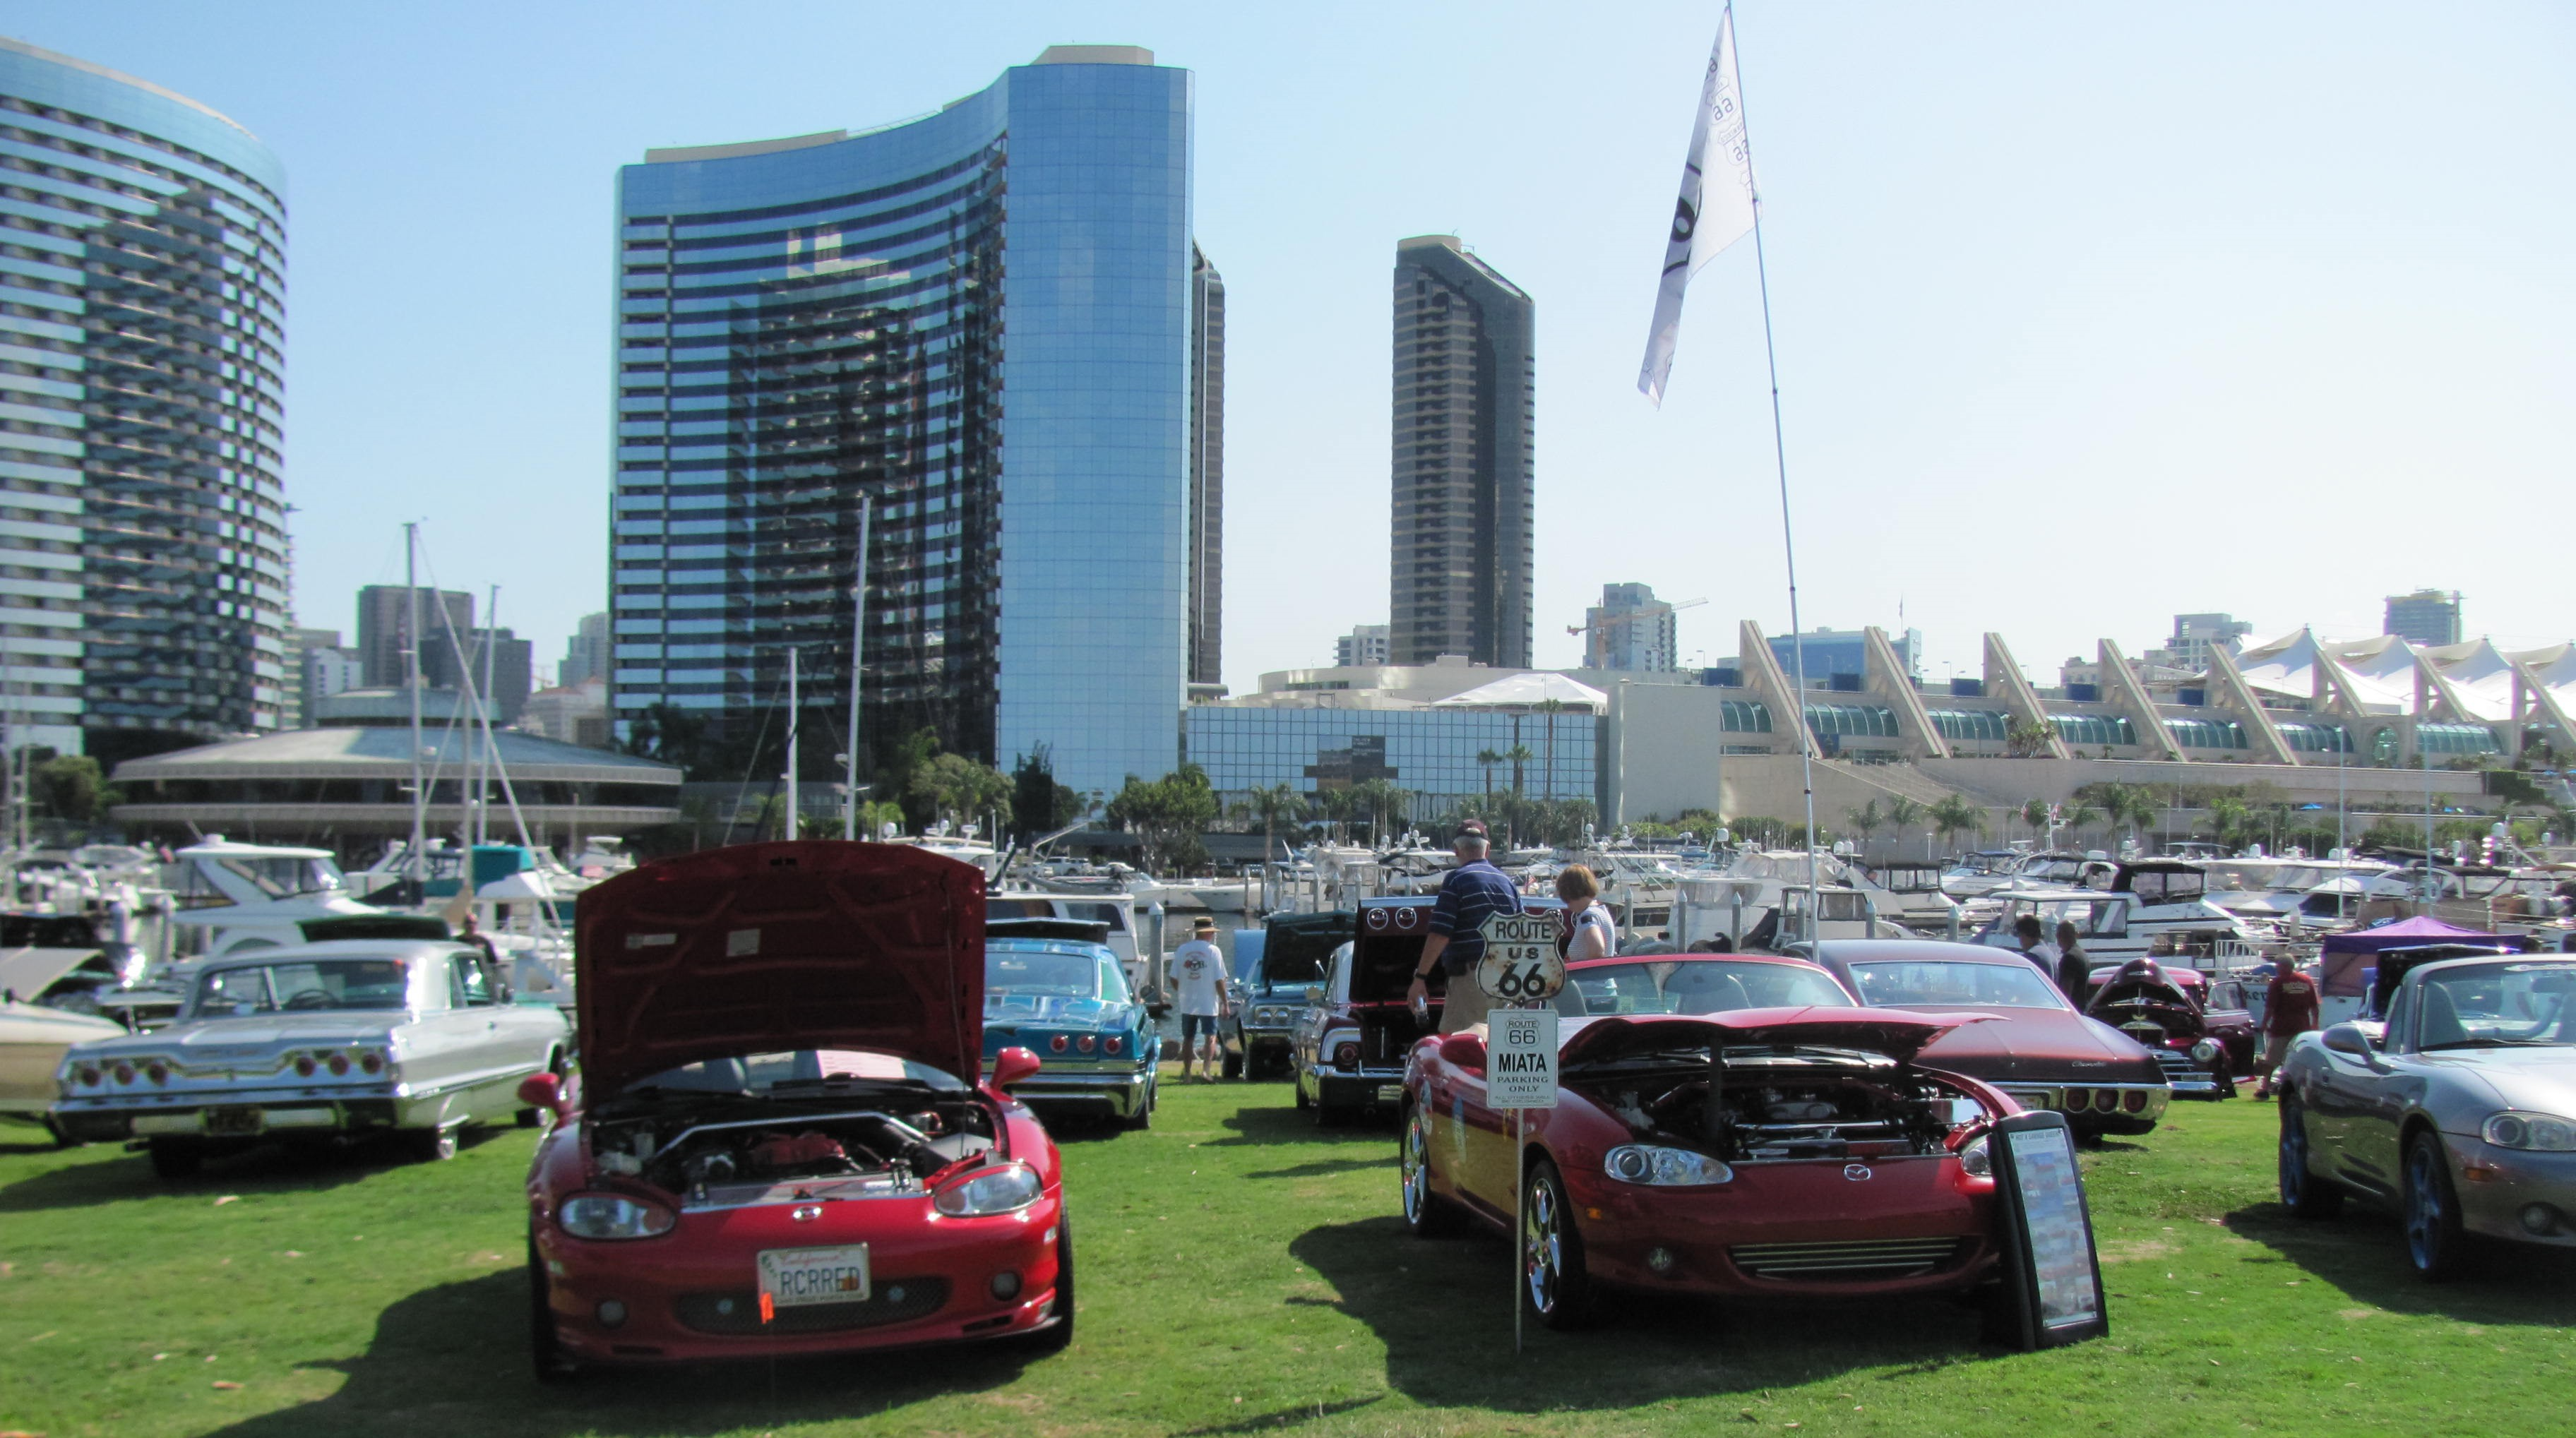 Main Street America Peoples Choice Car Show Corvette Owners Club - Sports car shows near me